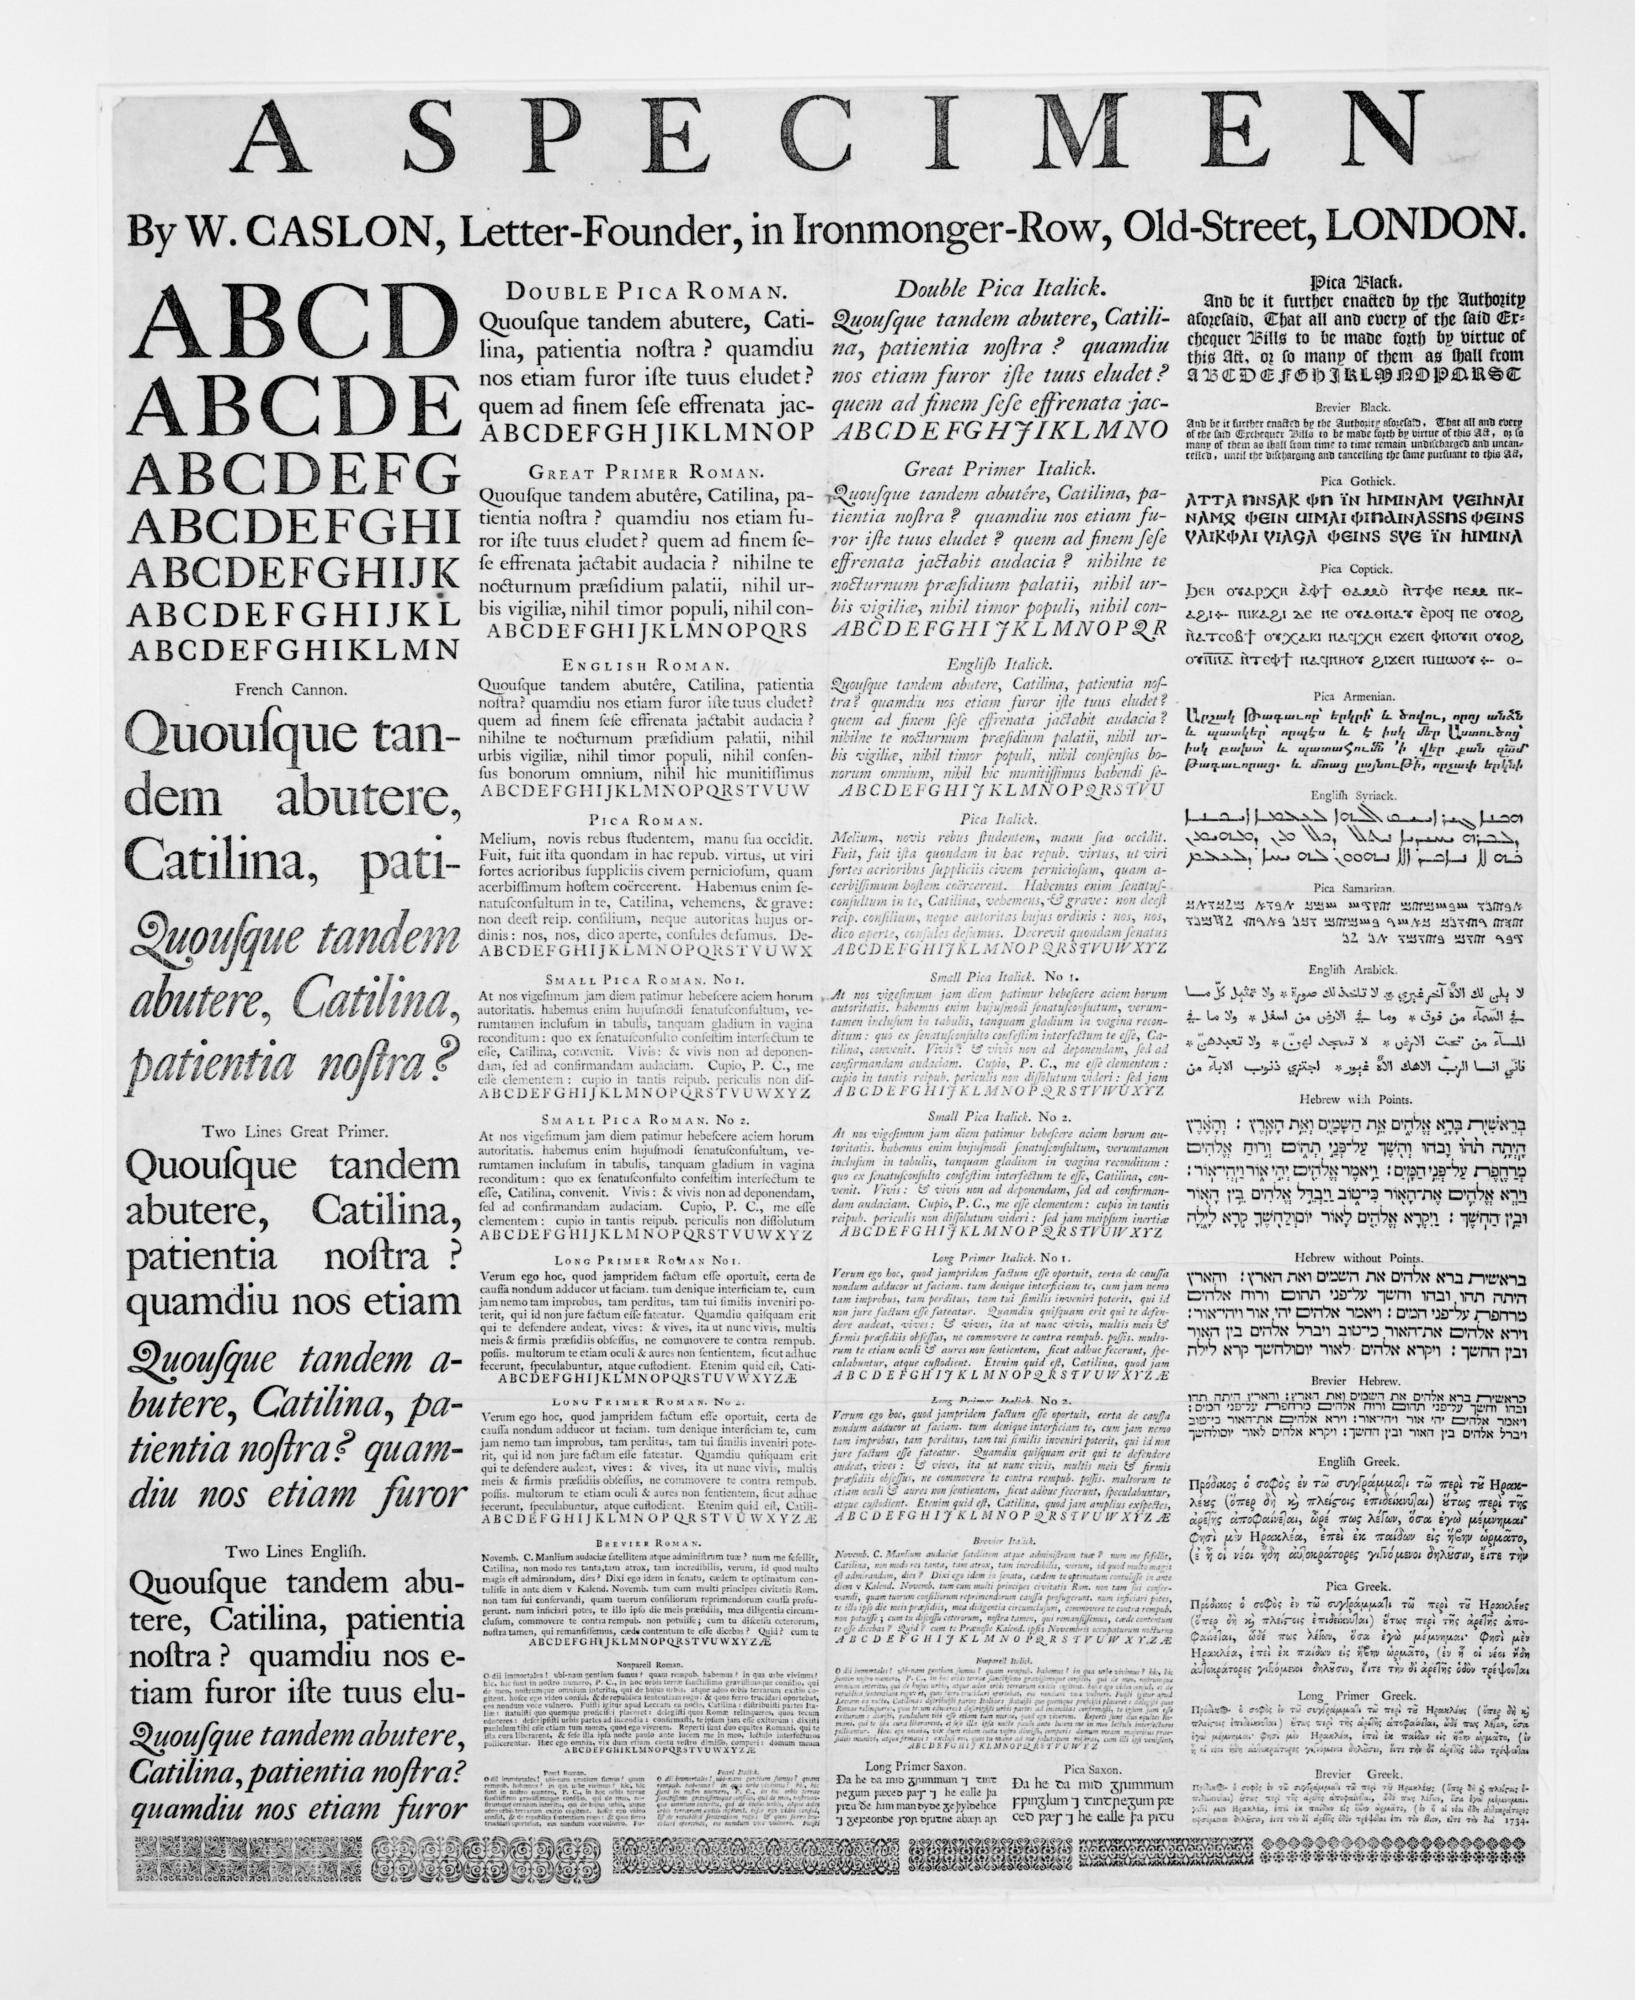 Specimen by W. Caslon, Letter-Founder, Ironmonger-Row, Old-Street, London